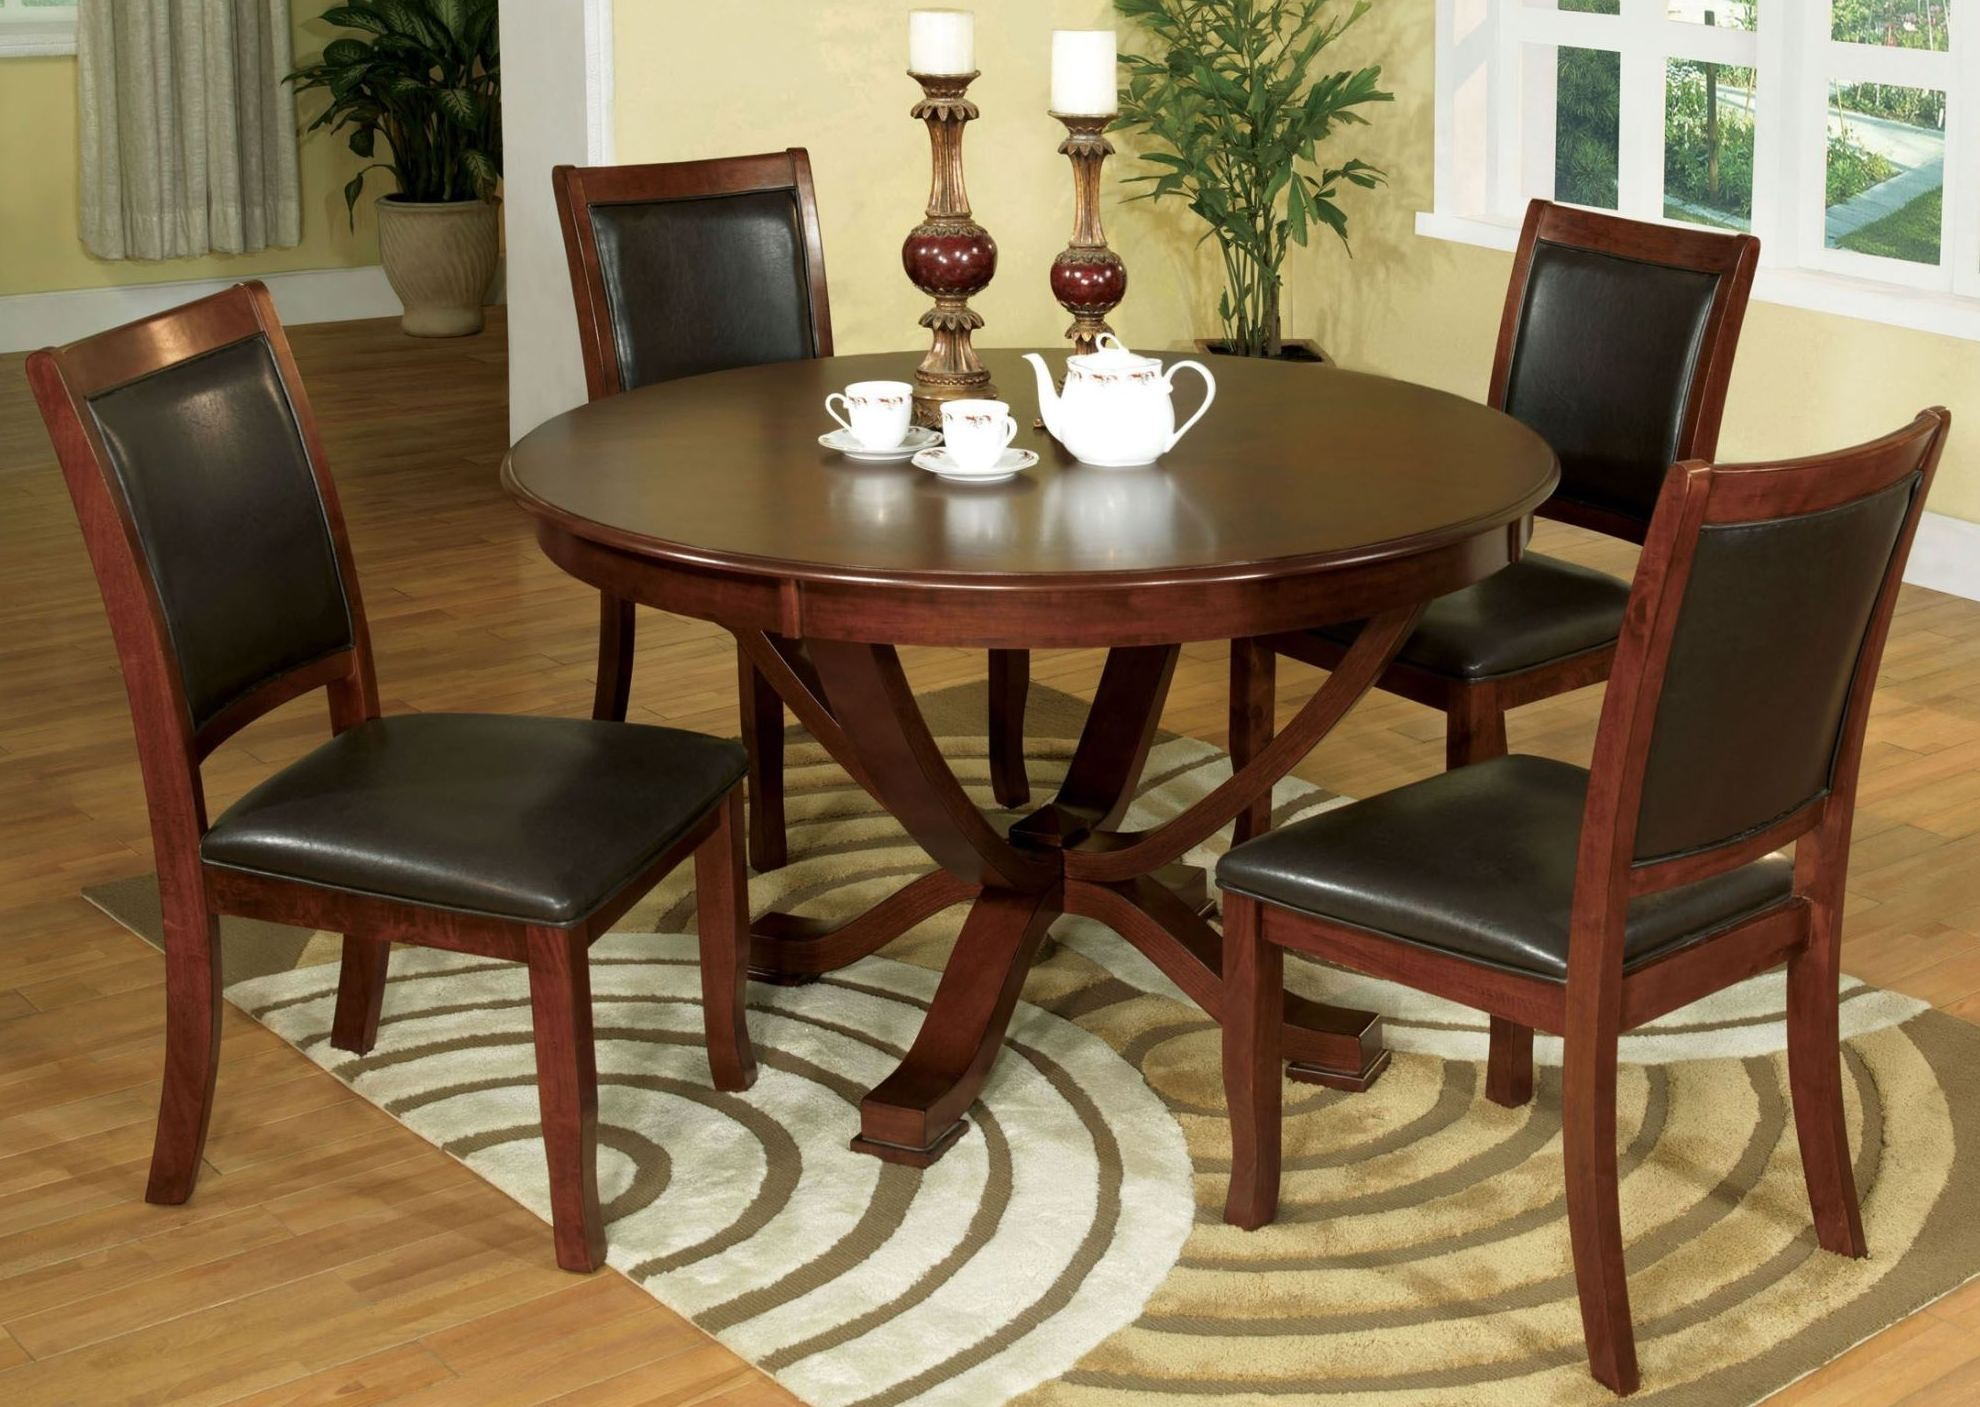 Sandy point brown cherry round pedestal dining room set for Brown dining room set